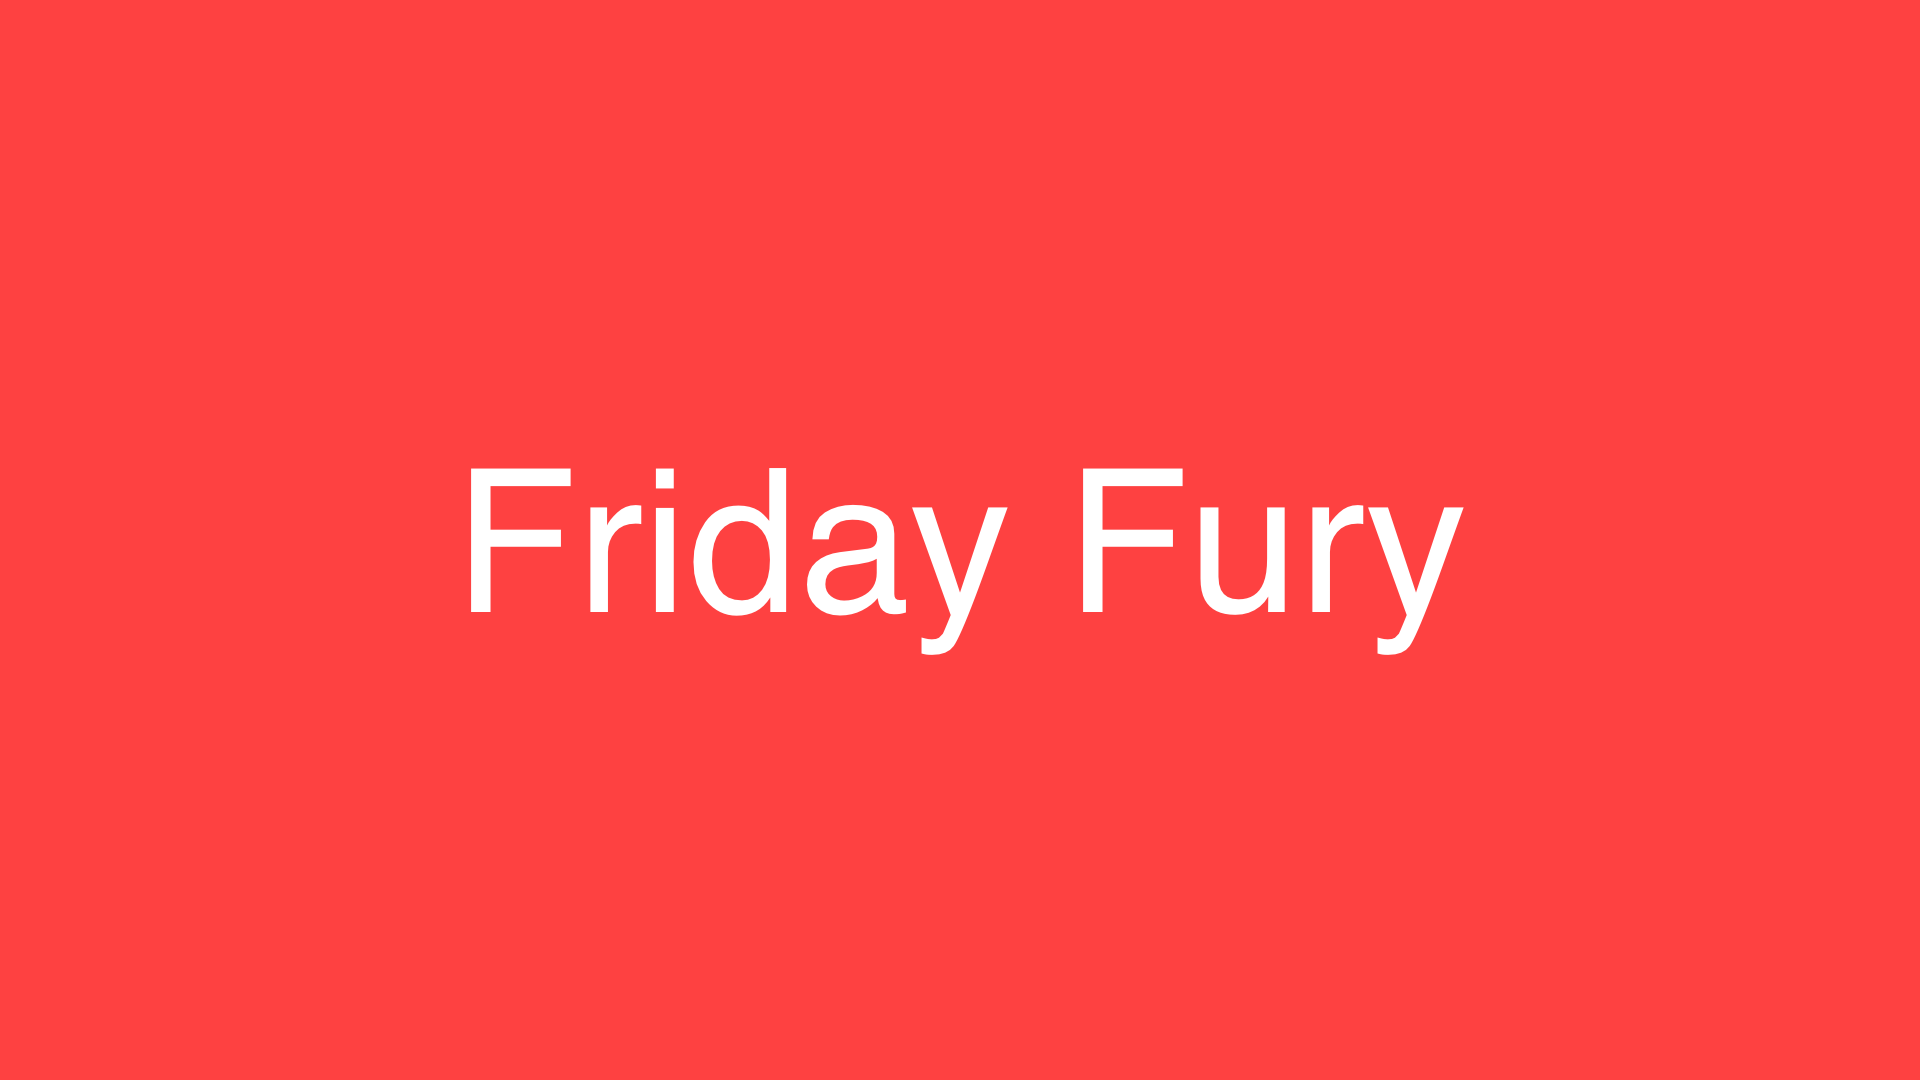 Friday Fury newsletter launch!